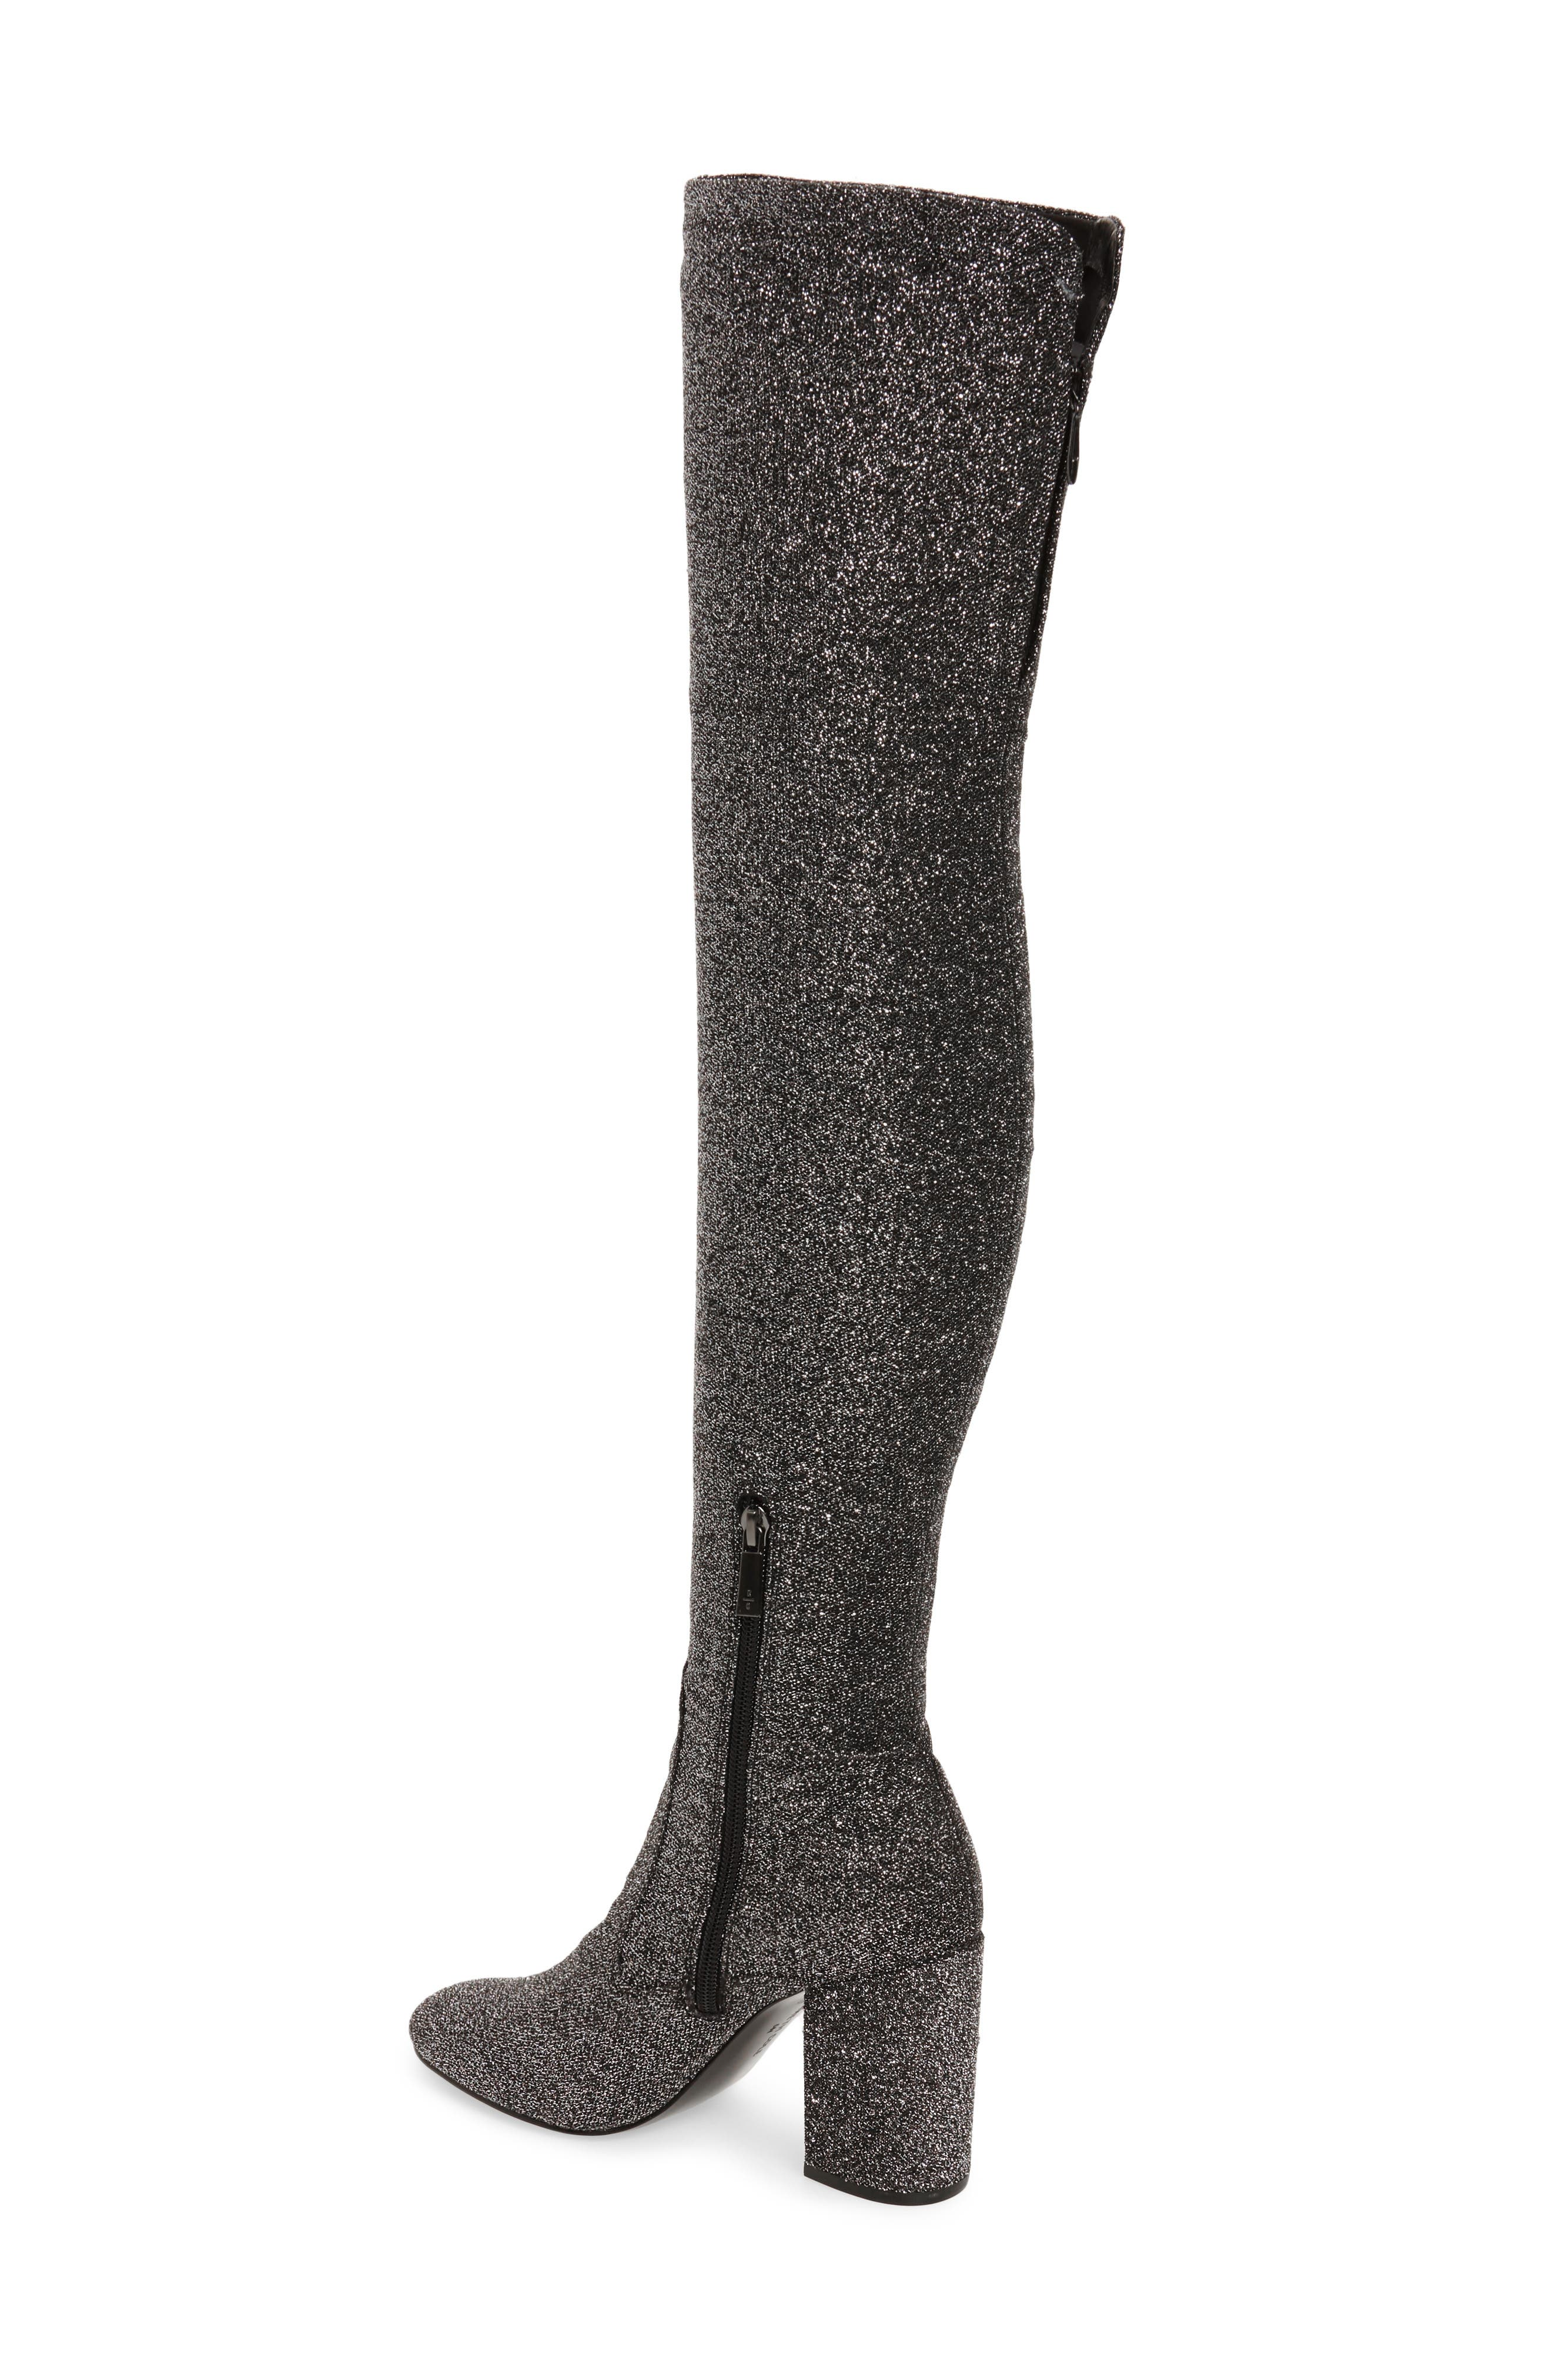 Carah Over the Knee Boot,                             Alternate thumbnail 2, color,                             024